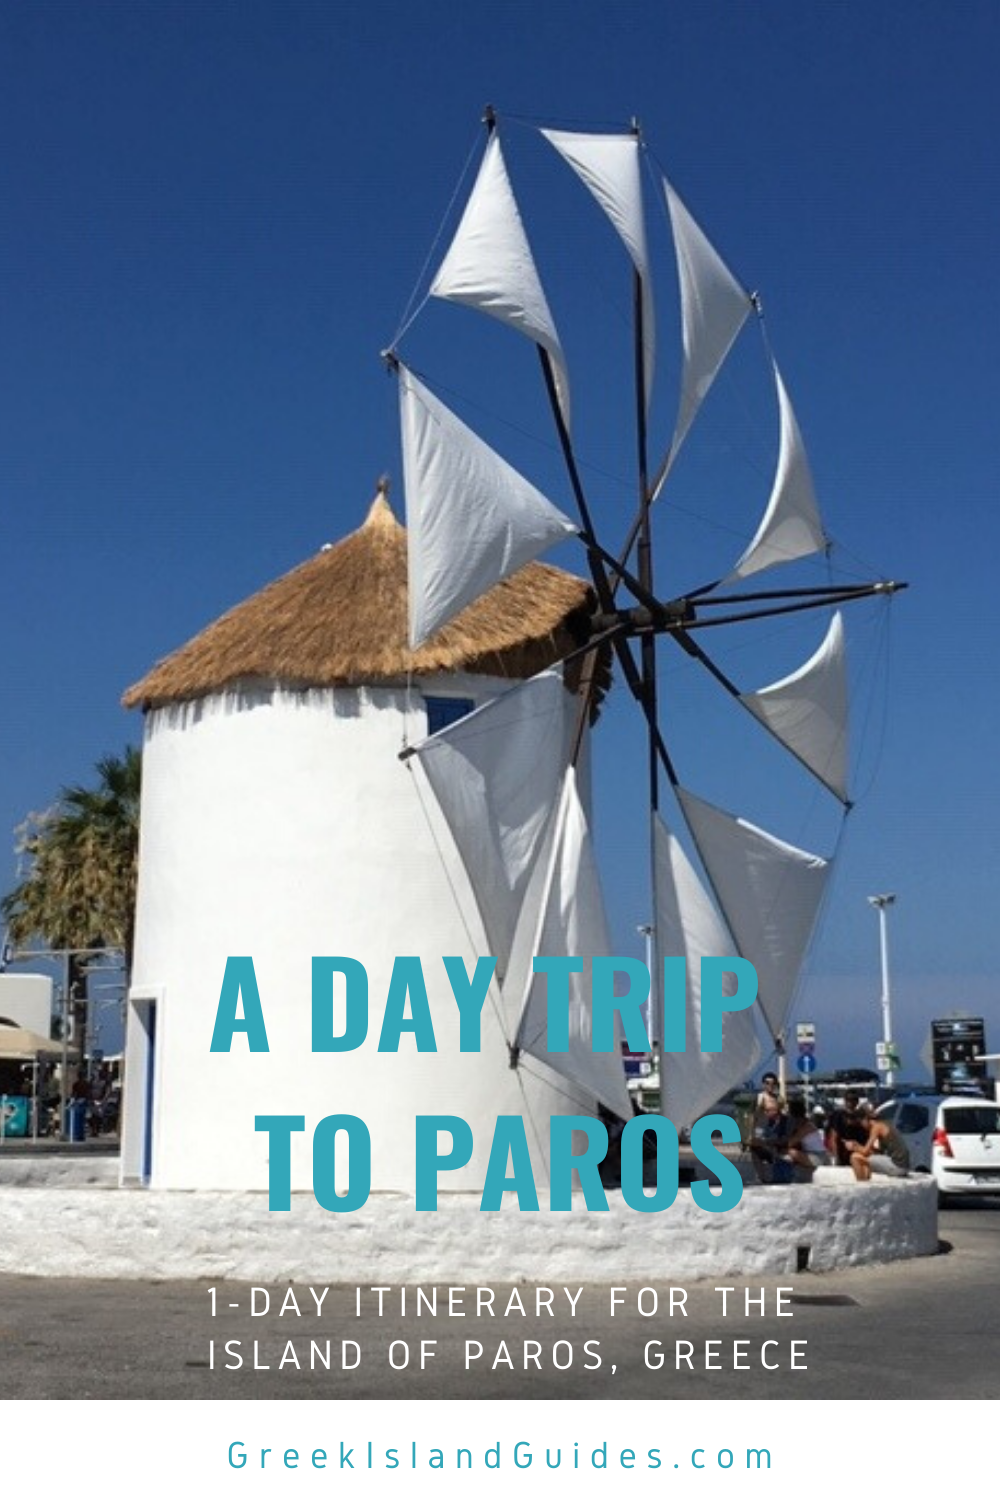 A Day Trip to Paros Greece